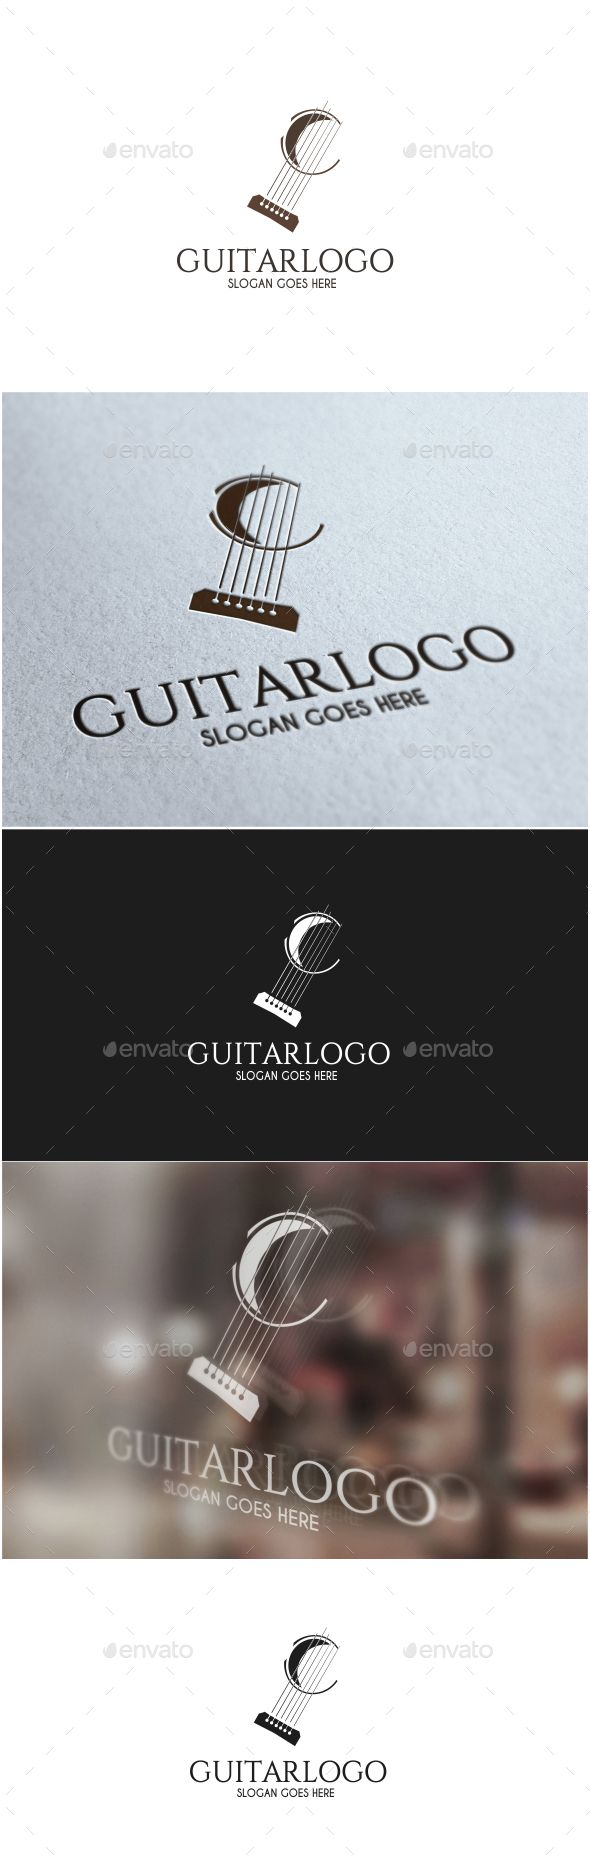 Guitar Logo,acoustic, band, classic, guitar, instrument, music, musician, note, service, shop, sound, store, string, studio